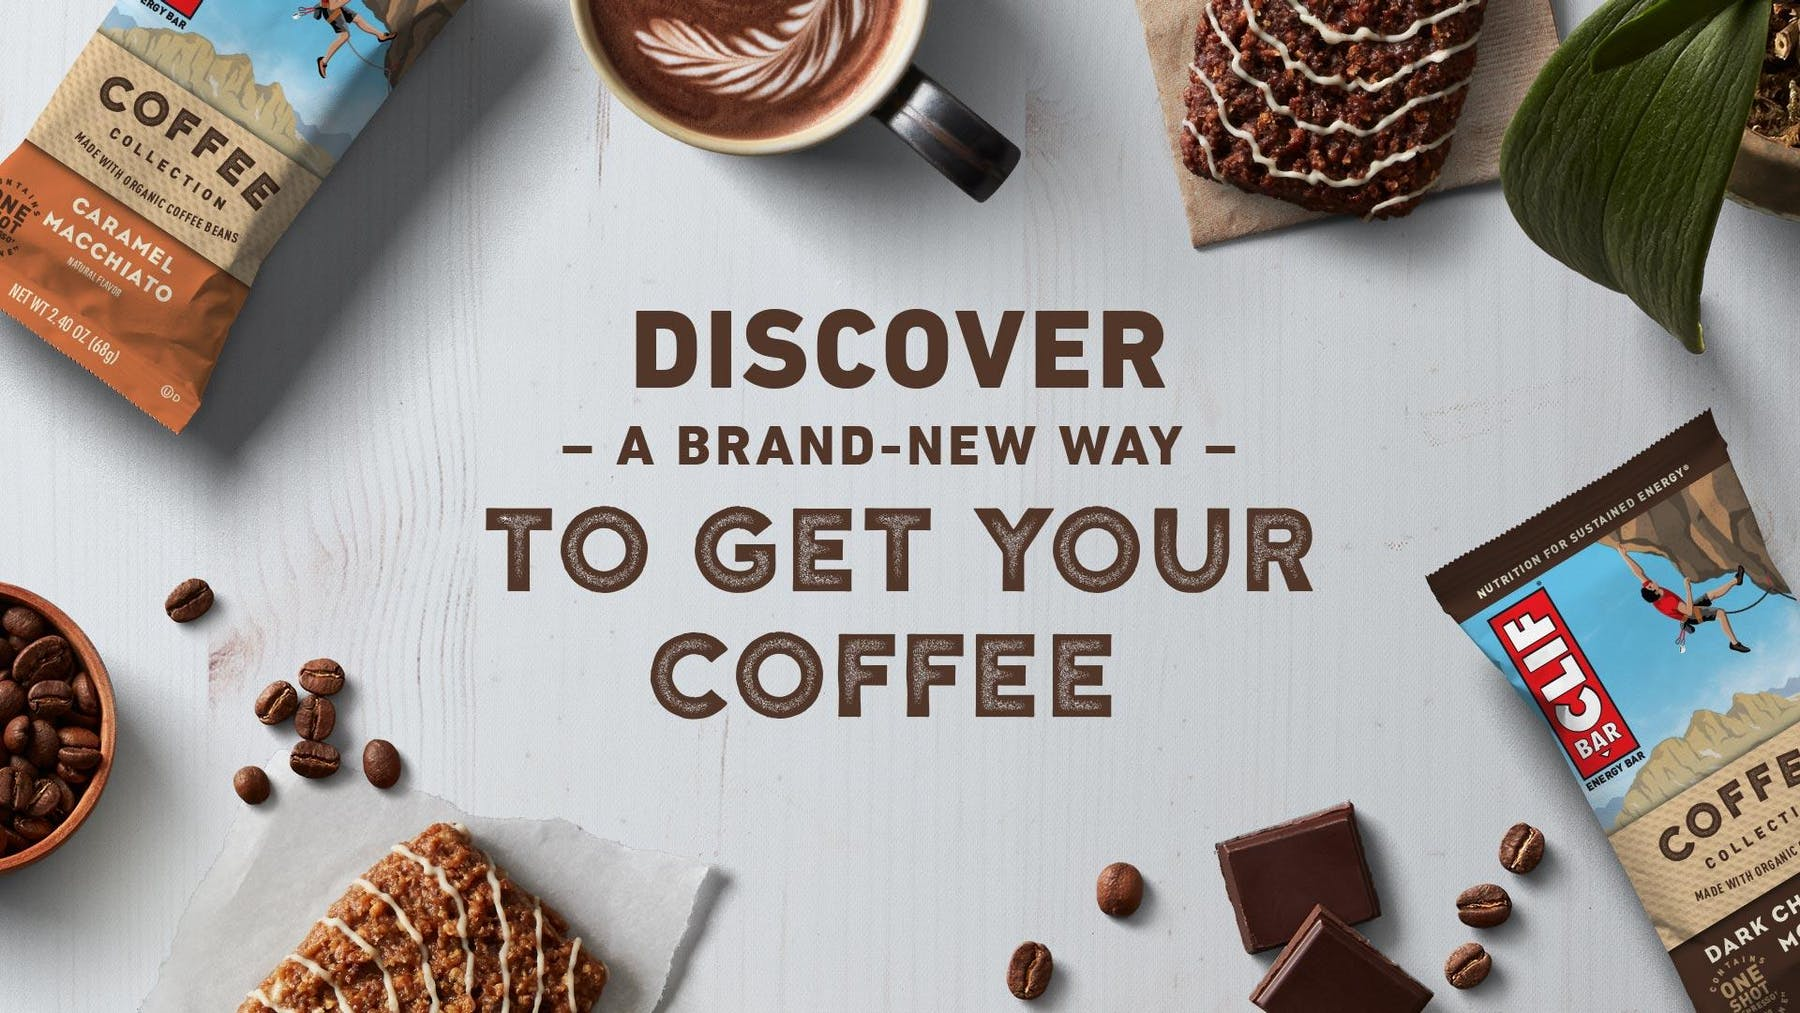 CLIF Bar Coffee Collection: Discover a new way to get your coffee